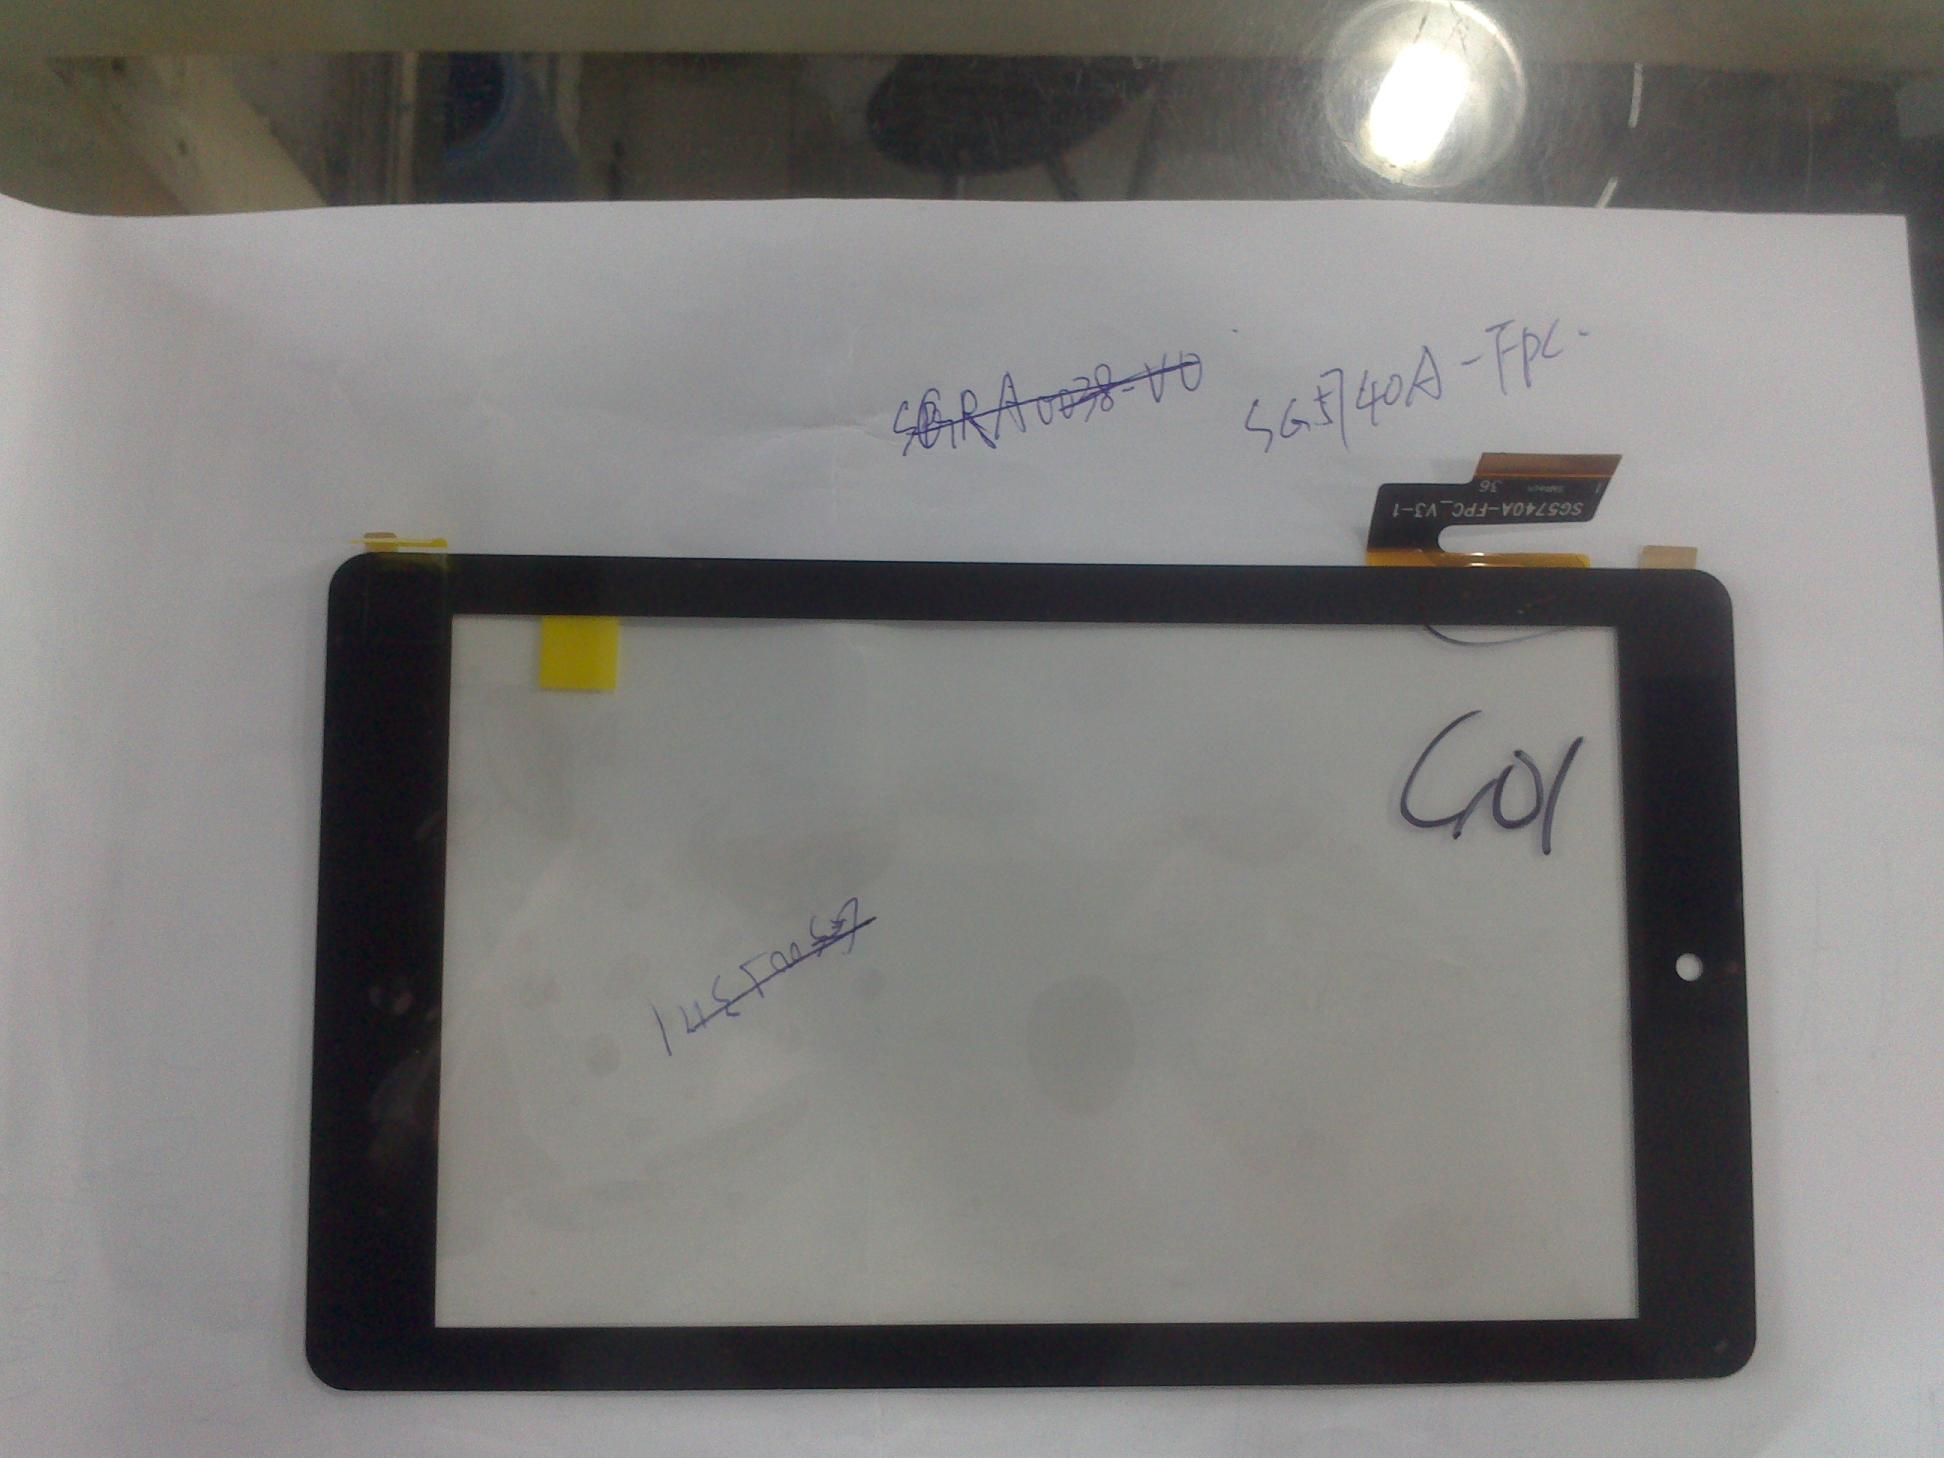 Запчасти для мобильных телефонов 7 inch new handwriting Tablet capacitive touch screen screen screen number is sg5740a/fpc_v3/1 SG5740A-FPC_V3-1 original new offer touch screen 4 5 inch gt1030 lwd c gt1020 lbd c warranty for 1 year